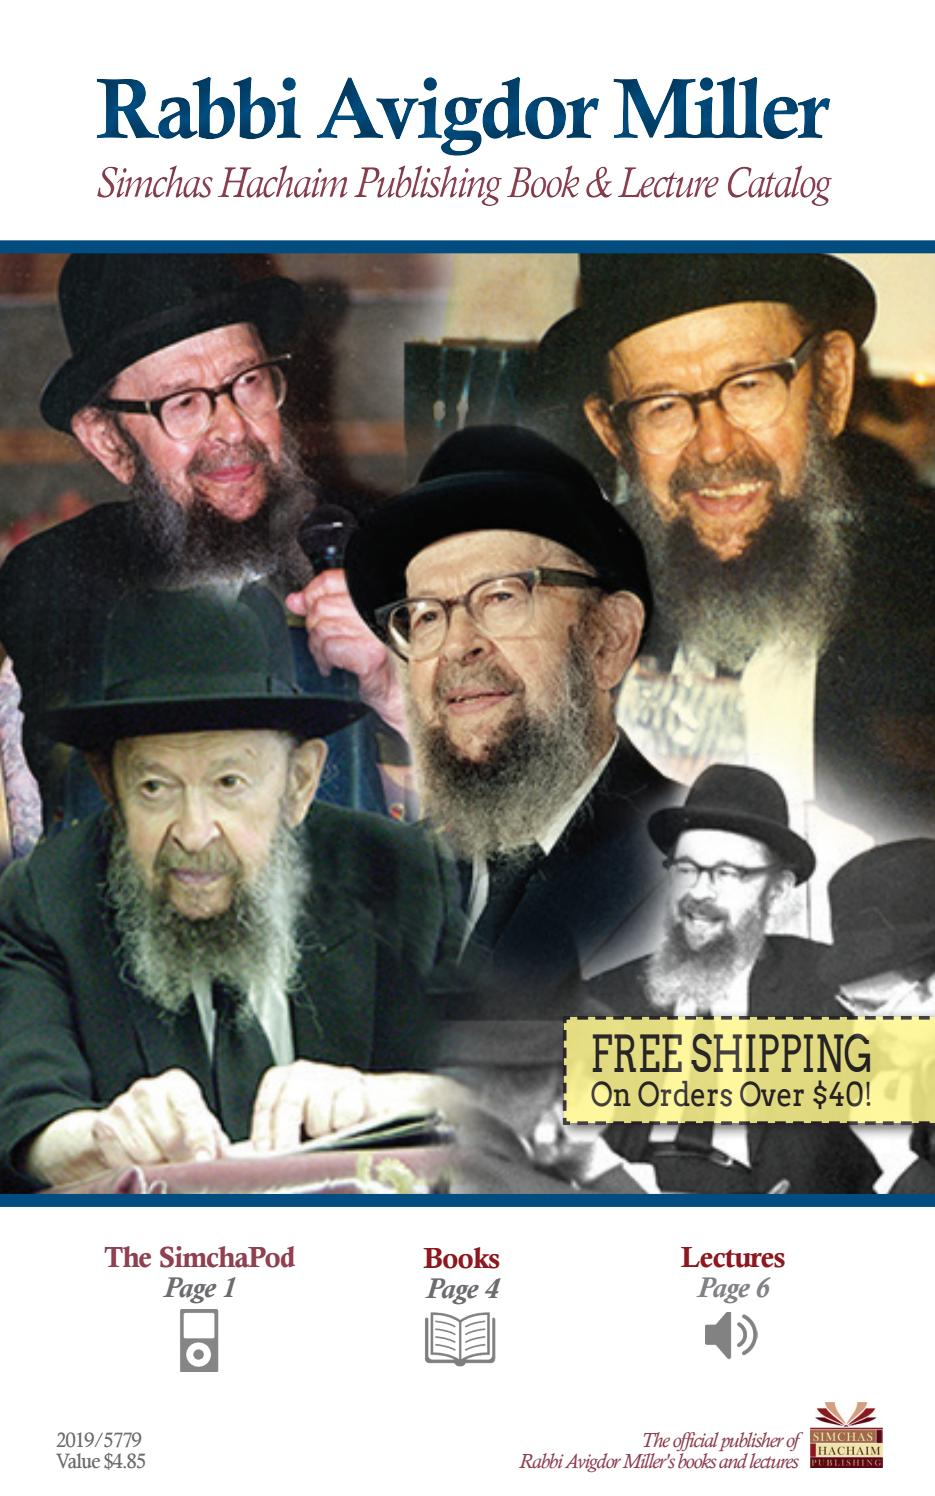 Rabbi Avigdor Miller 5779 Book and Lecture Catalog by